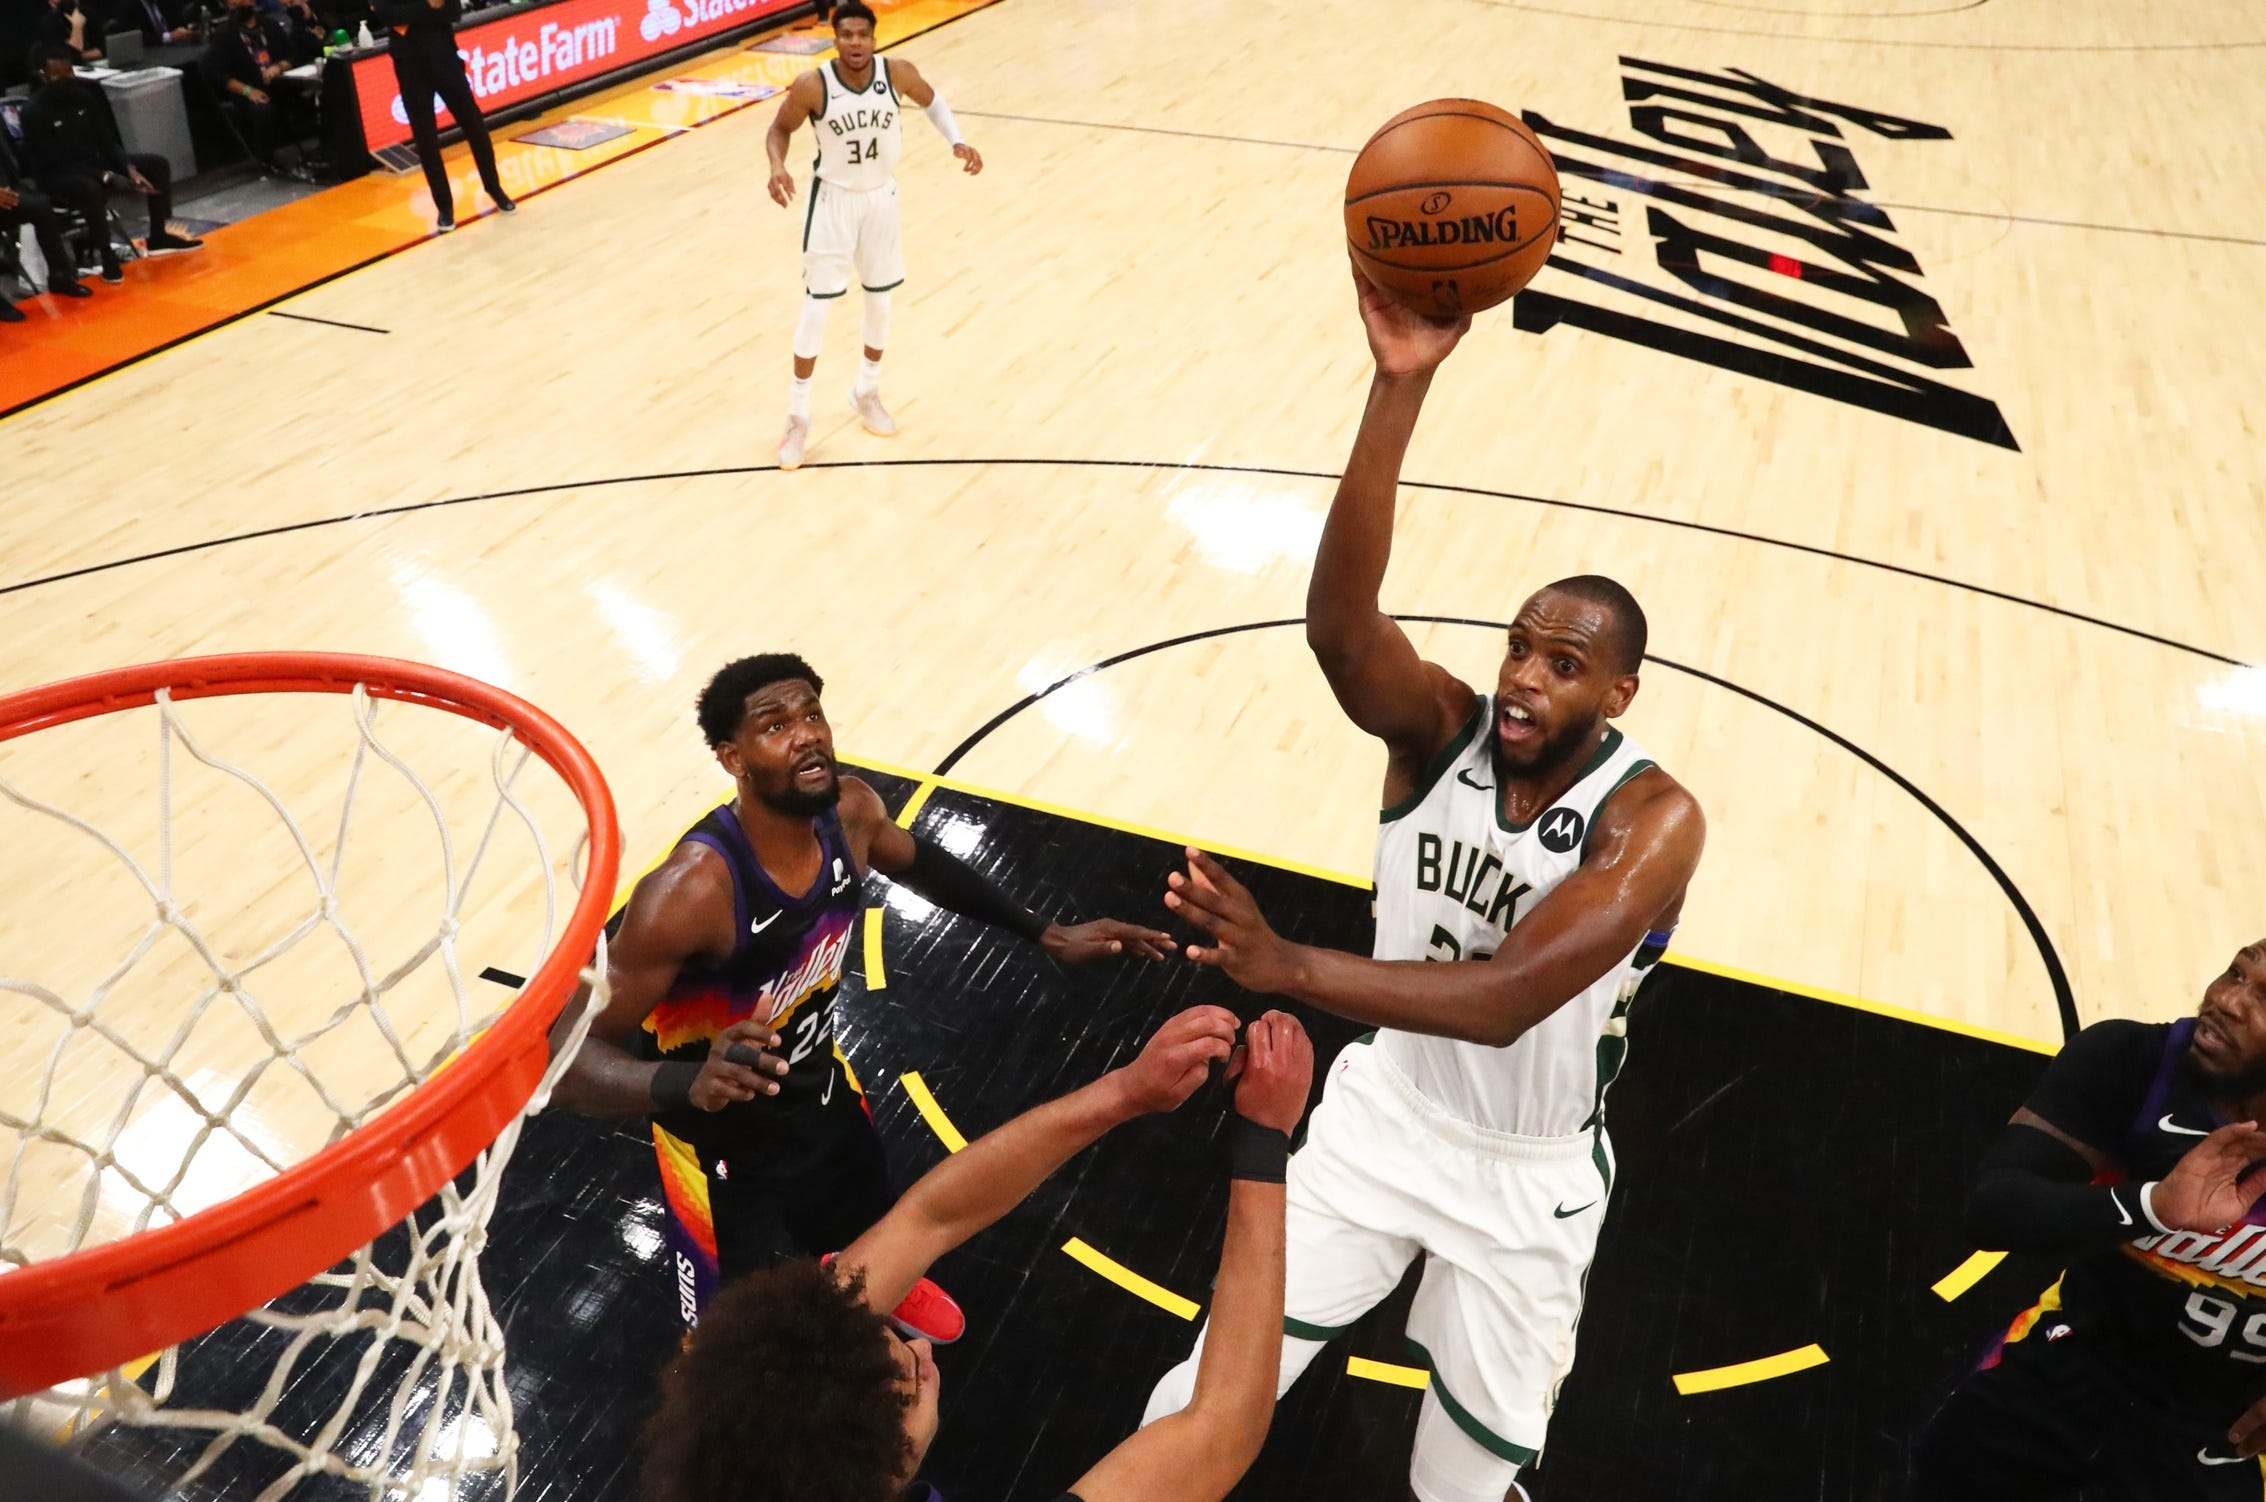 Kane Pitman Joins The Bart Winkler Show to Talk NBA Finals